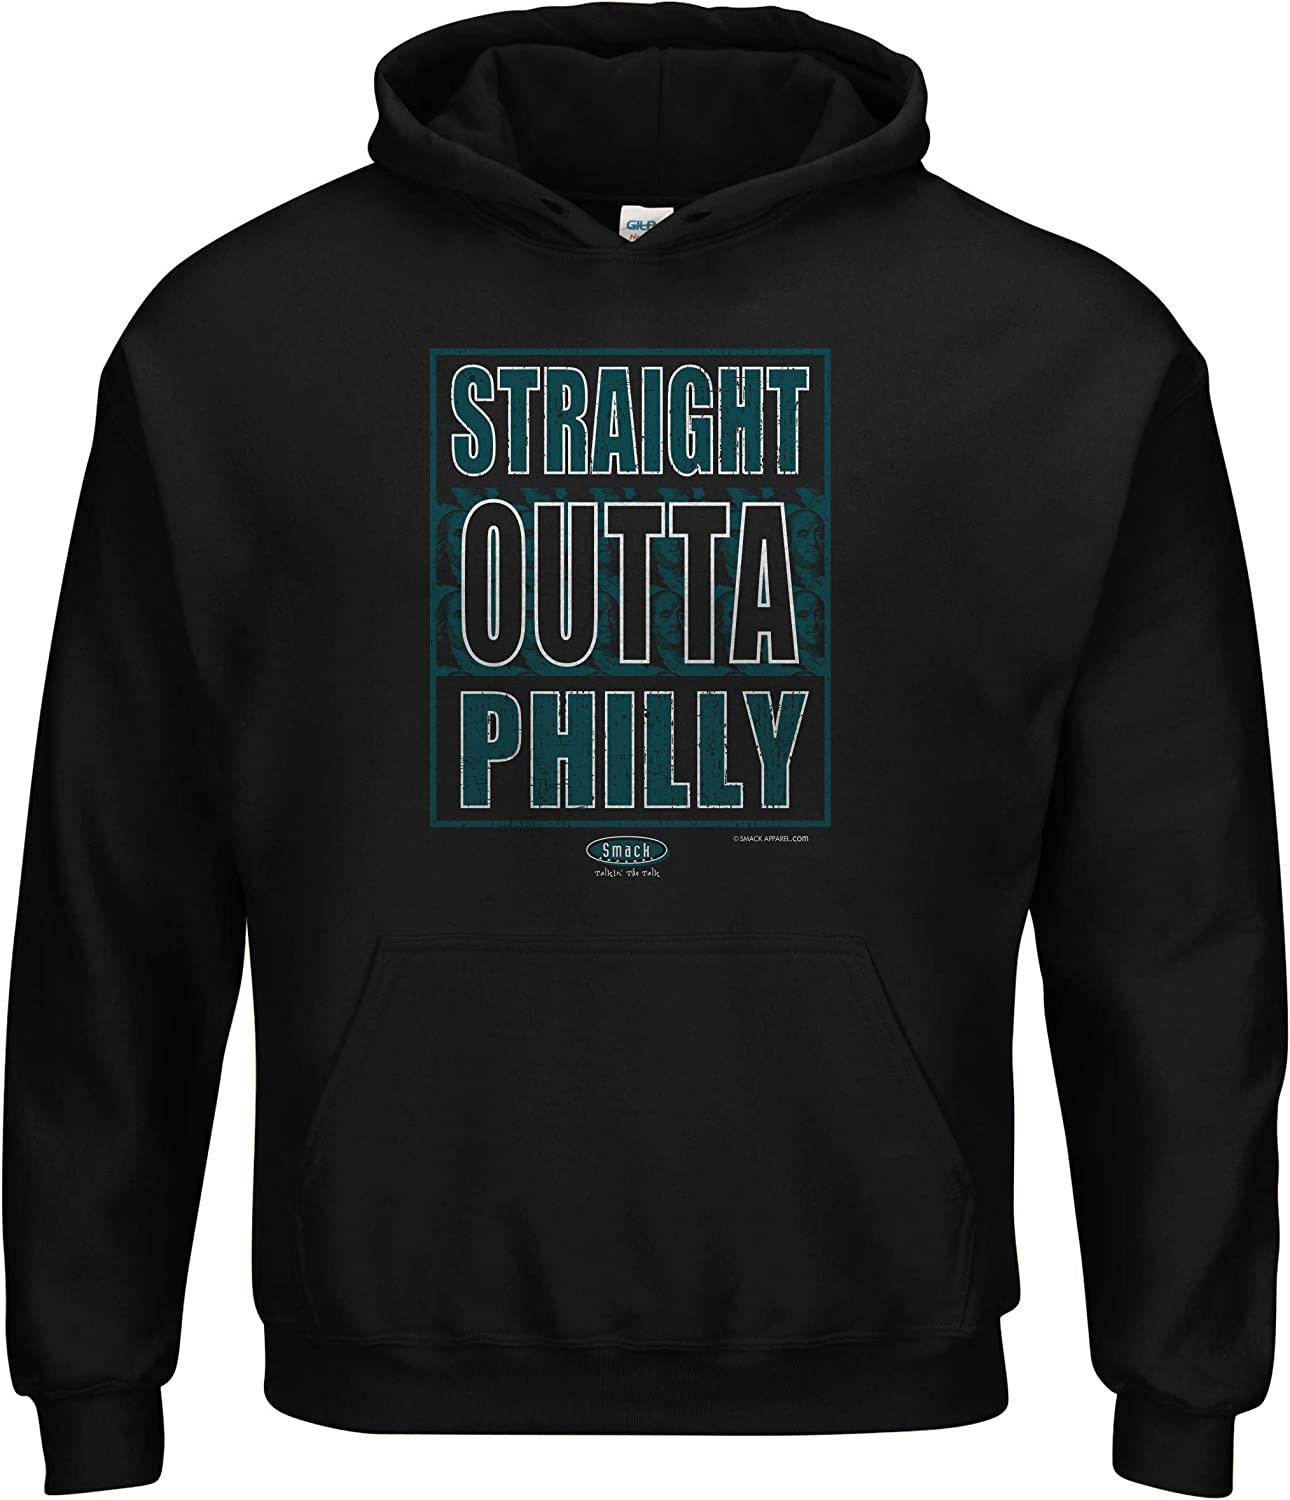 Philadelphia Football Fans Straight Outta Philly Black T-Shirt Sm-5X